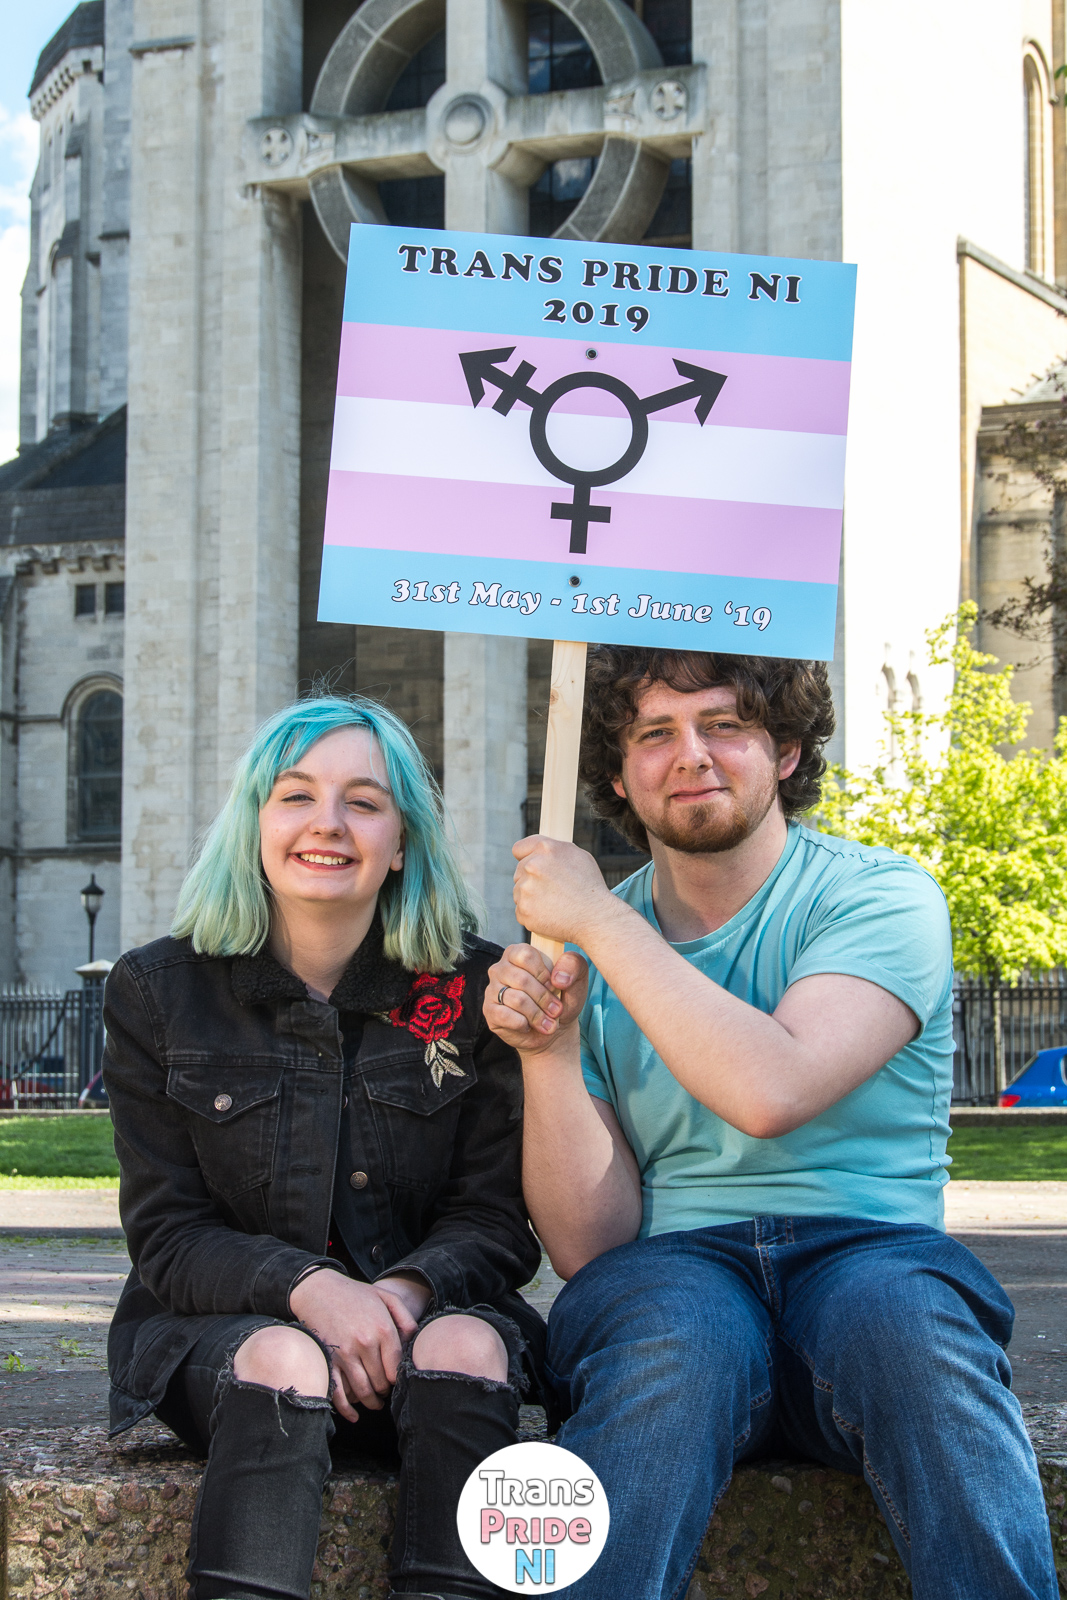 Trans Pride Northern Ireland Festival promotion photo 2019 by Bout Yeh photographers Belfast